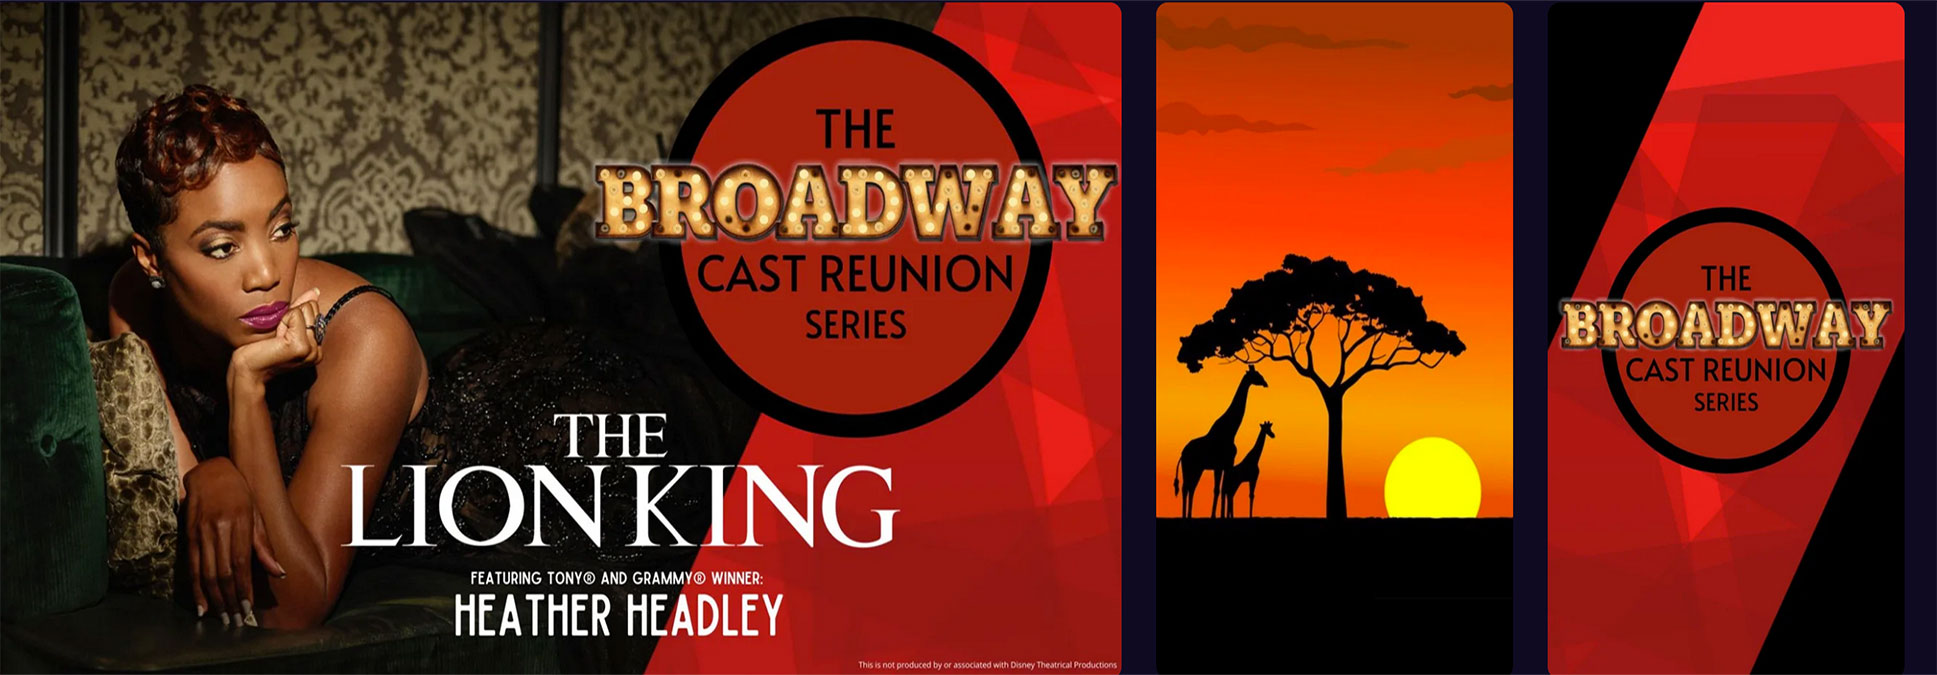 Broadway Cast Reunion Marcus Performing Arts Center in Milwaukee, Wisconsin